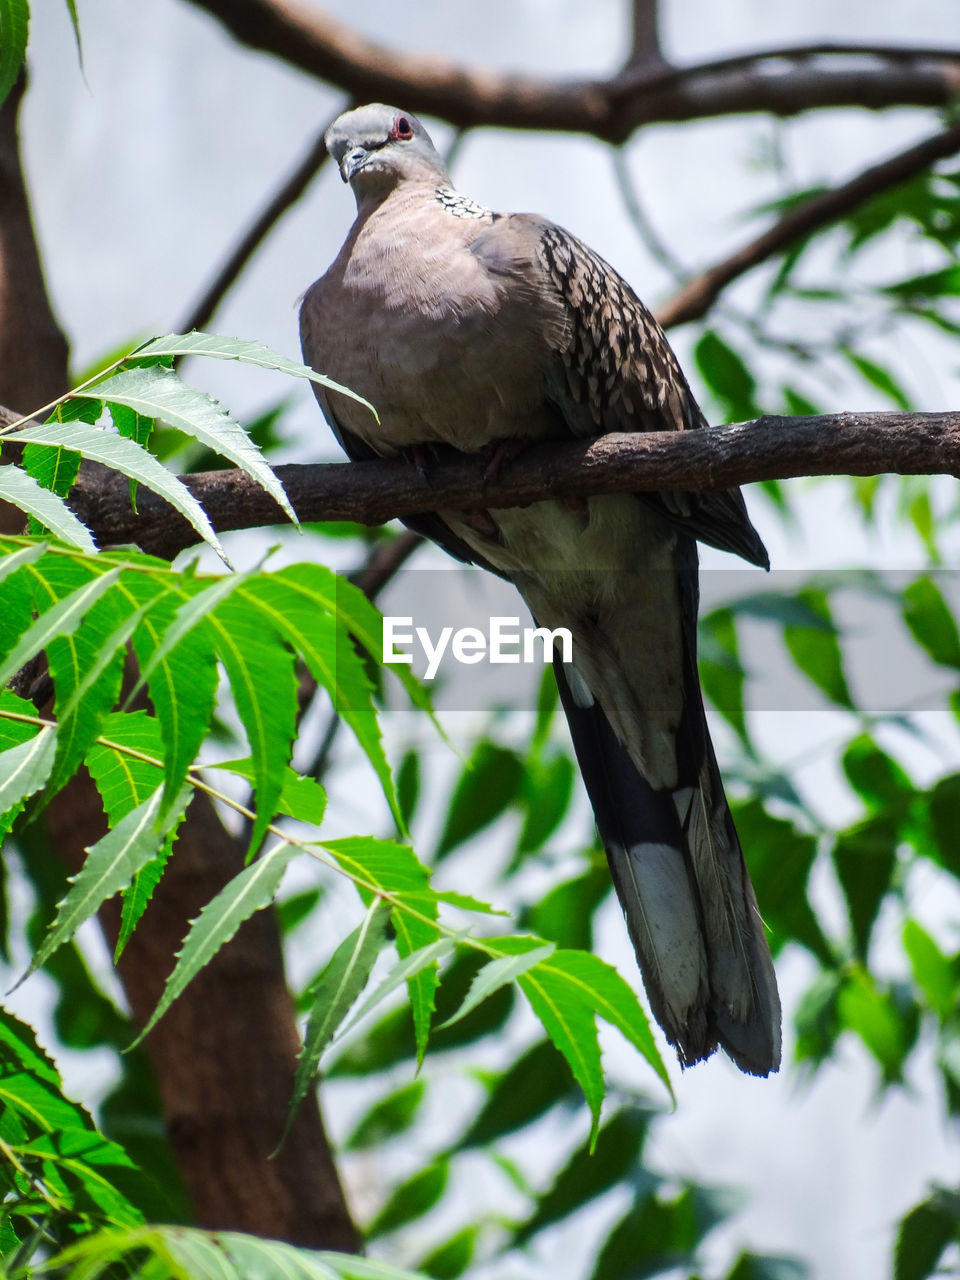 bird, vertebrate, animal, animal themes, animals in the wild, one animal, animal wildlife, plant, perching, tree, branch, no people, nature, leaf, low angle view, plant part, day, focus on foreground, close-up, green color, outdoors, eagle